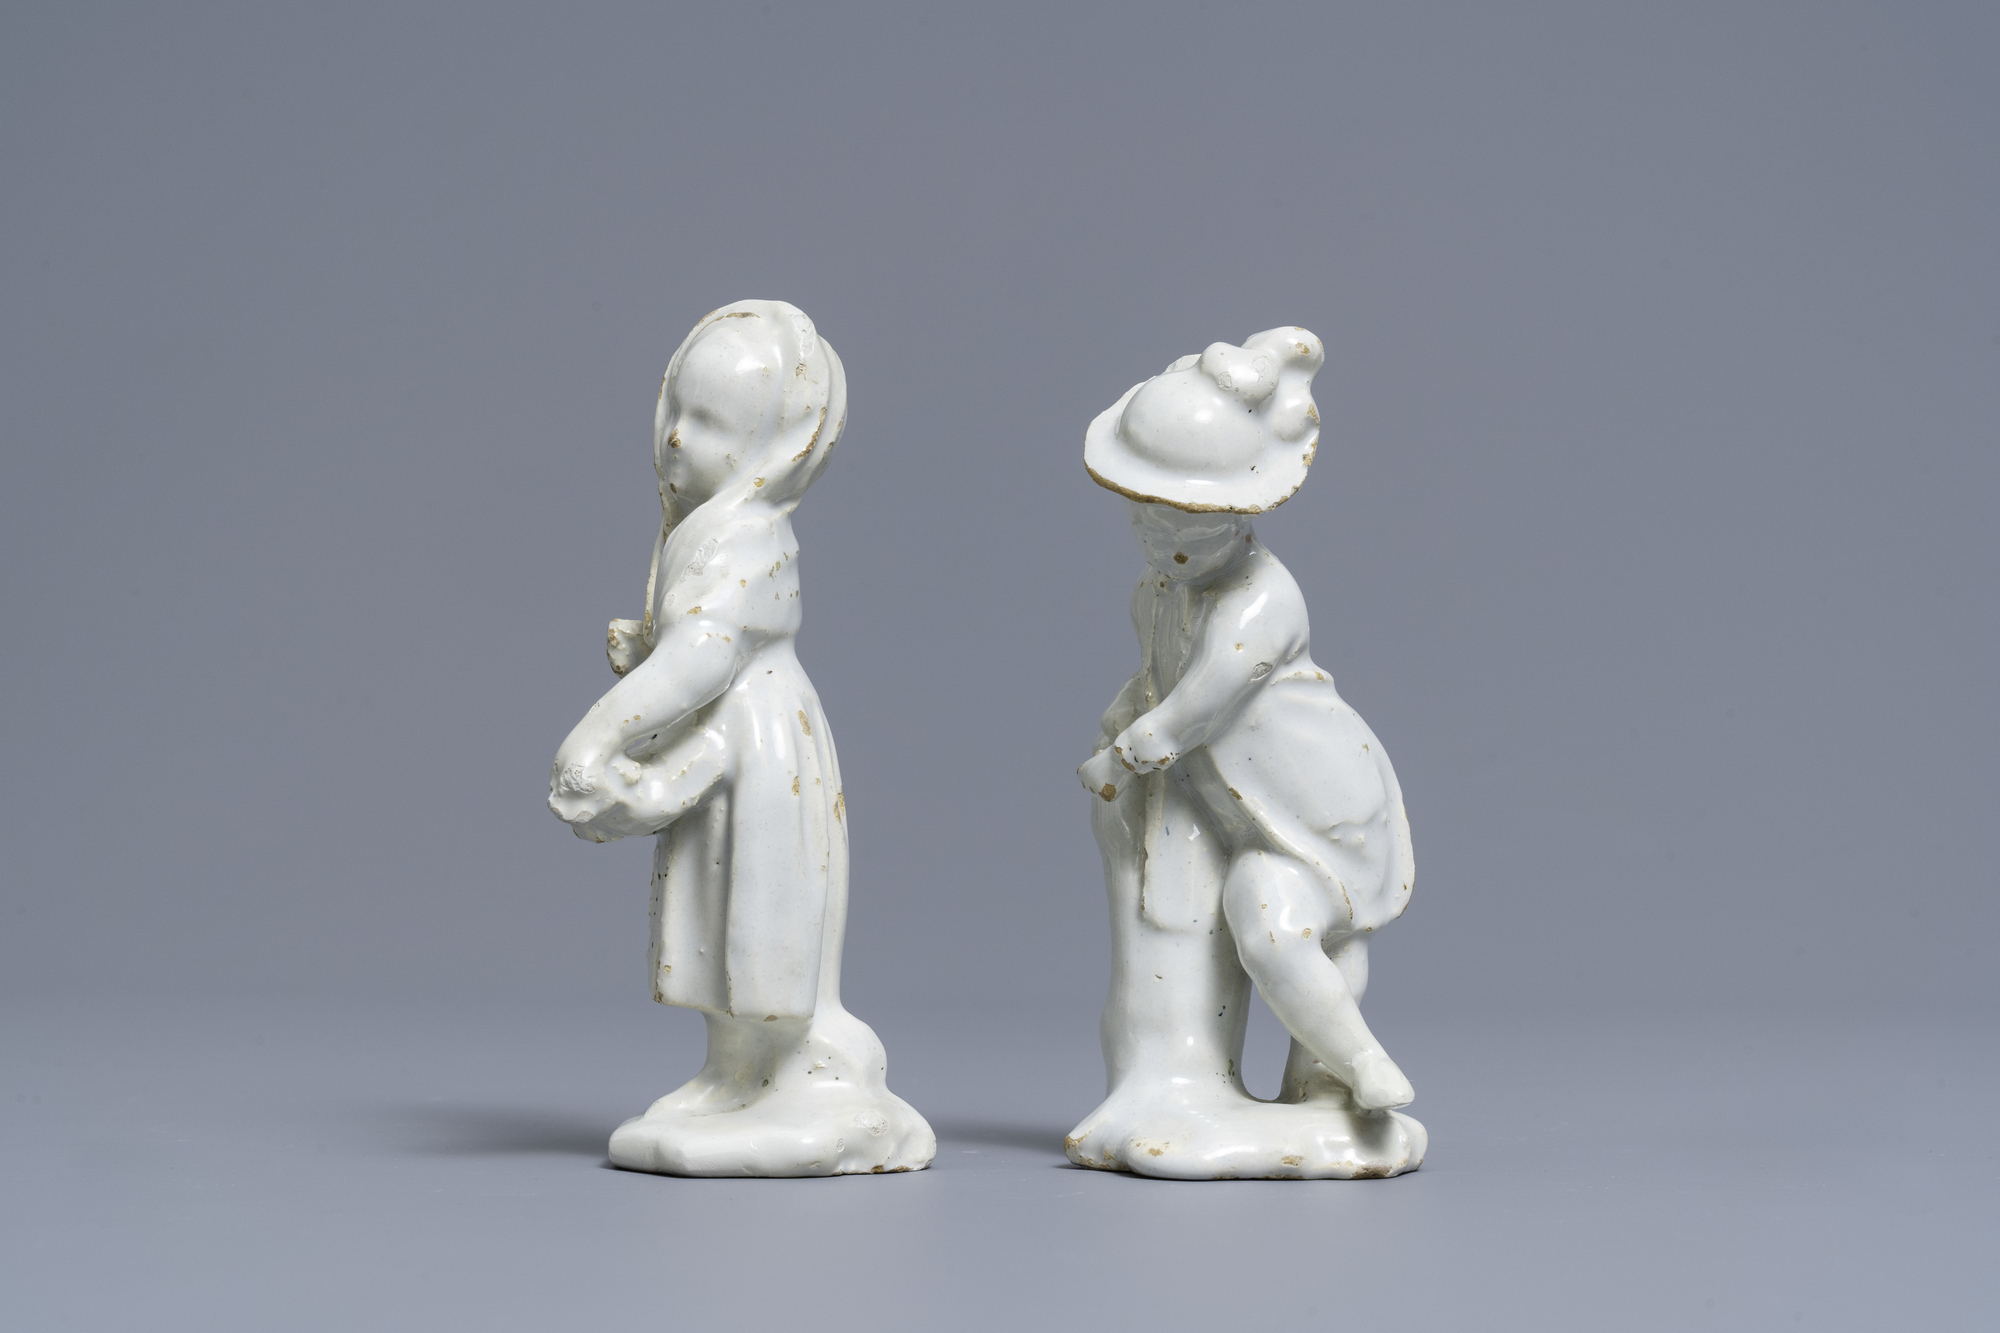 Two white Dutch Delftware figures of a boy and a girl, 18th C. - Image 5 of 7